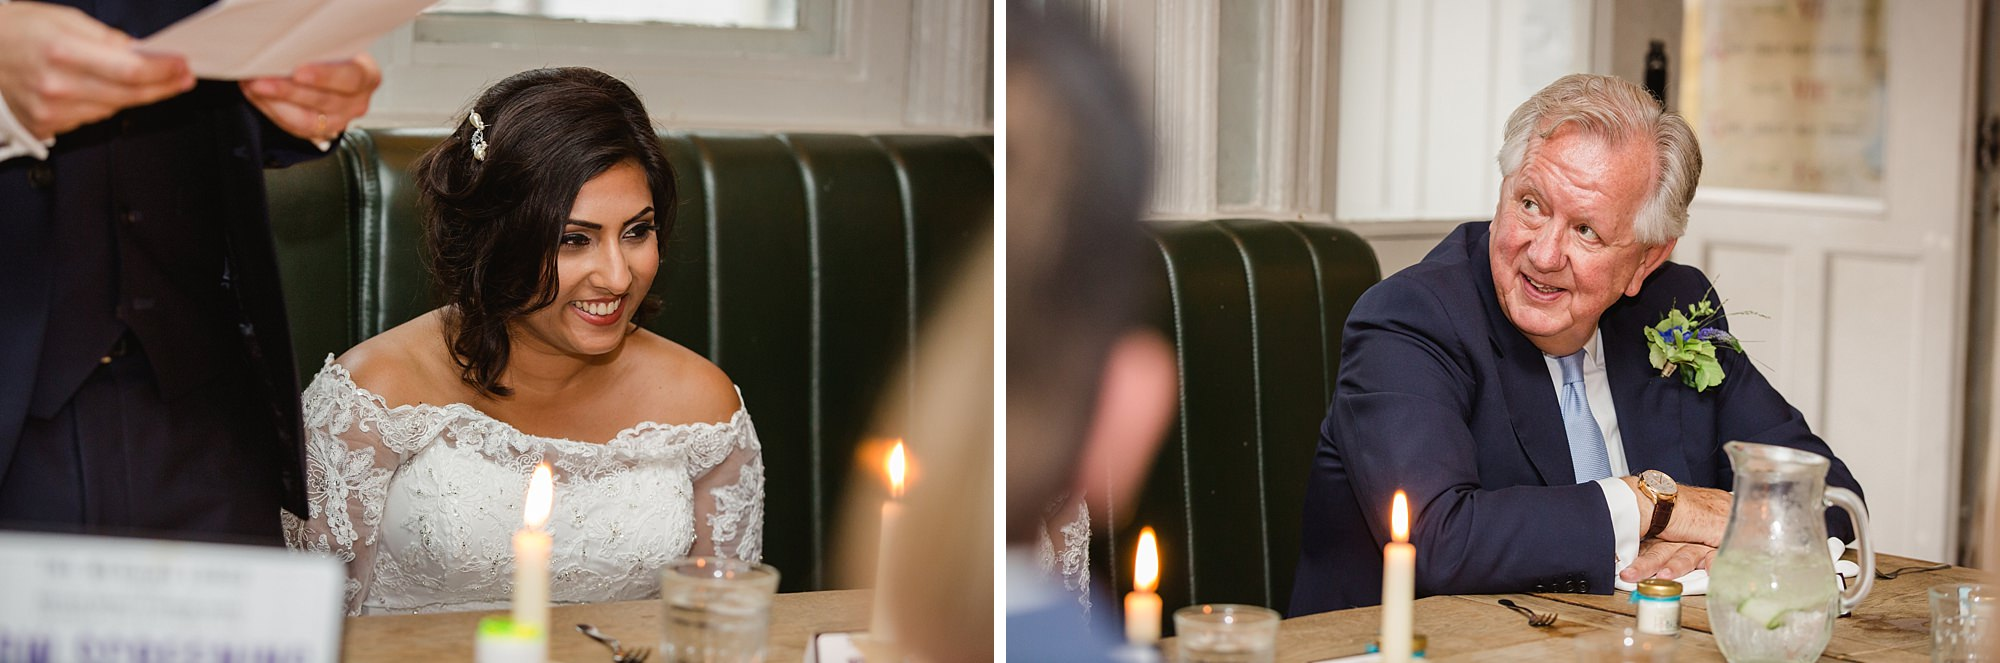 Paradise by way of Kensal Green wedding bride during wedding speech